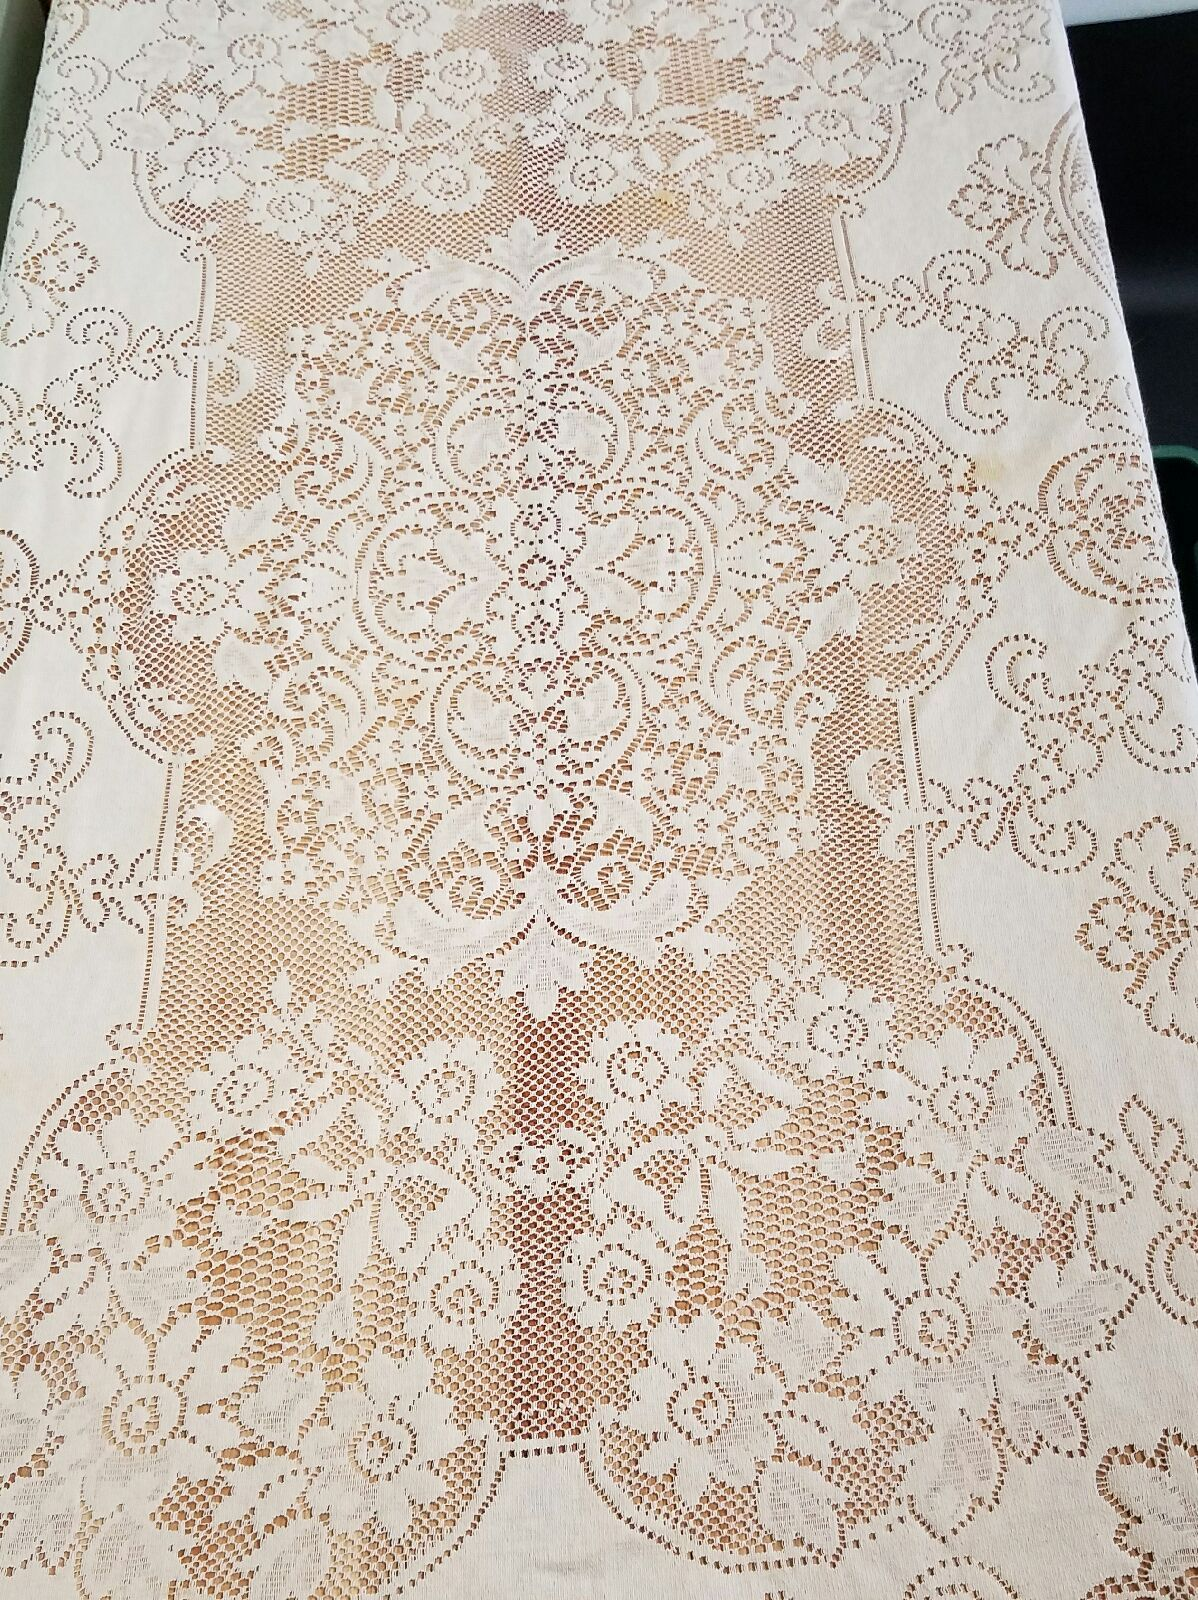 Vintage Off White Cotton Lace 54x70 Tablecloth Made in USA Use Repurpose VL Lovely cloth has some staining.  Made in USA.  I have not tried to treat the stains.  Use or repurpose.   See photos for actual condition.   https://nemb.ly/p/B1QIQ0Kje Happily published via Nembol